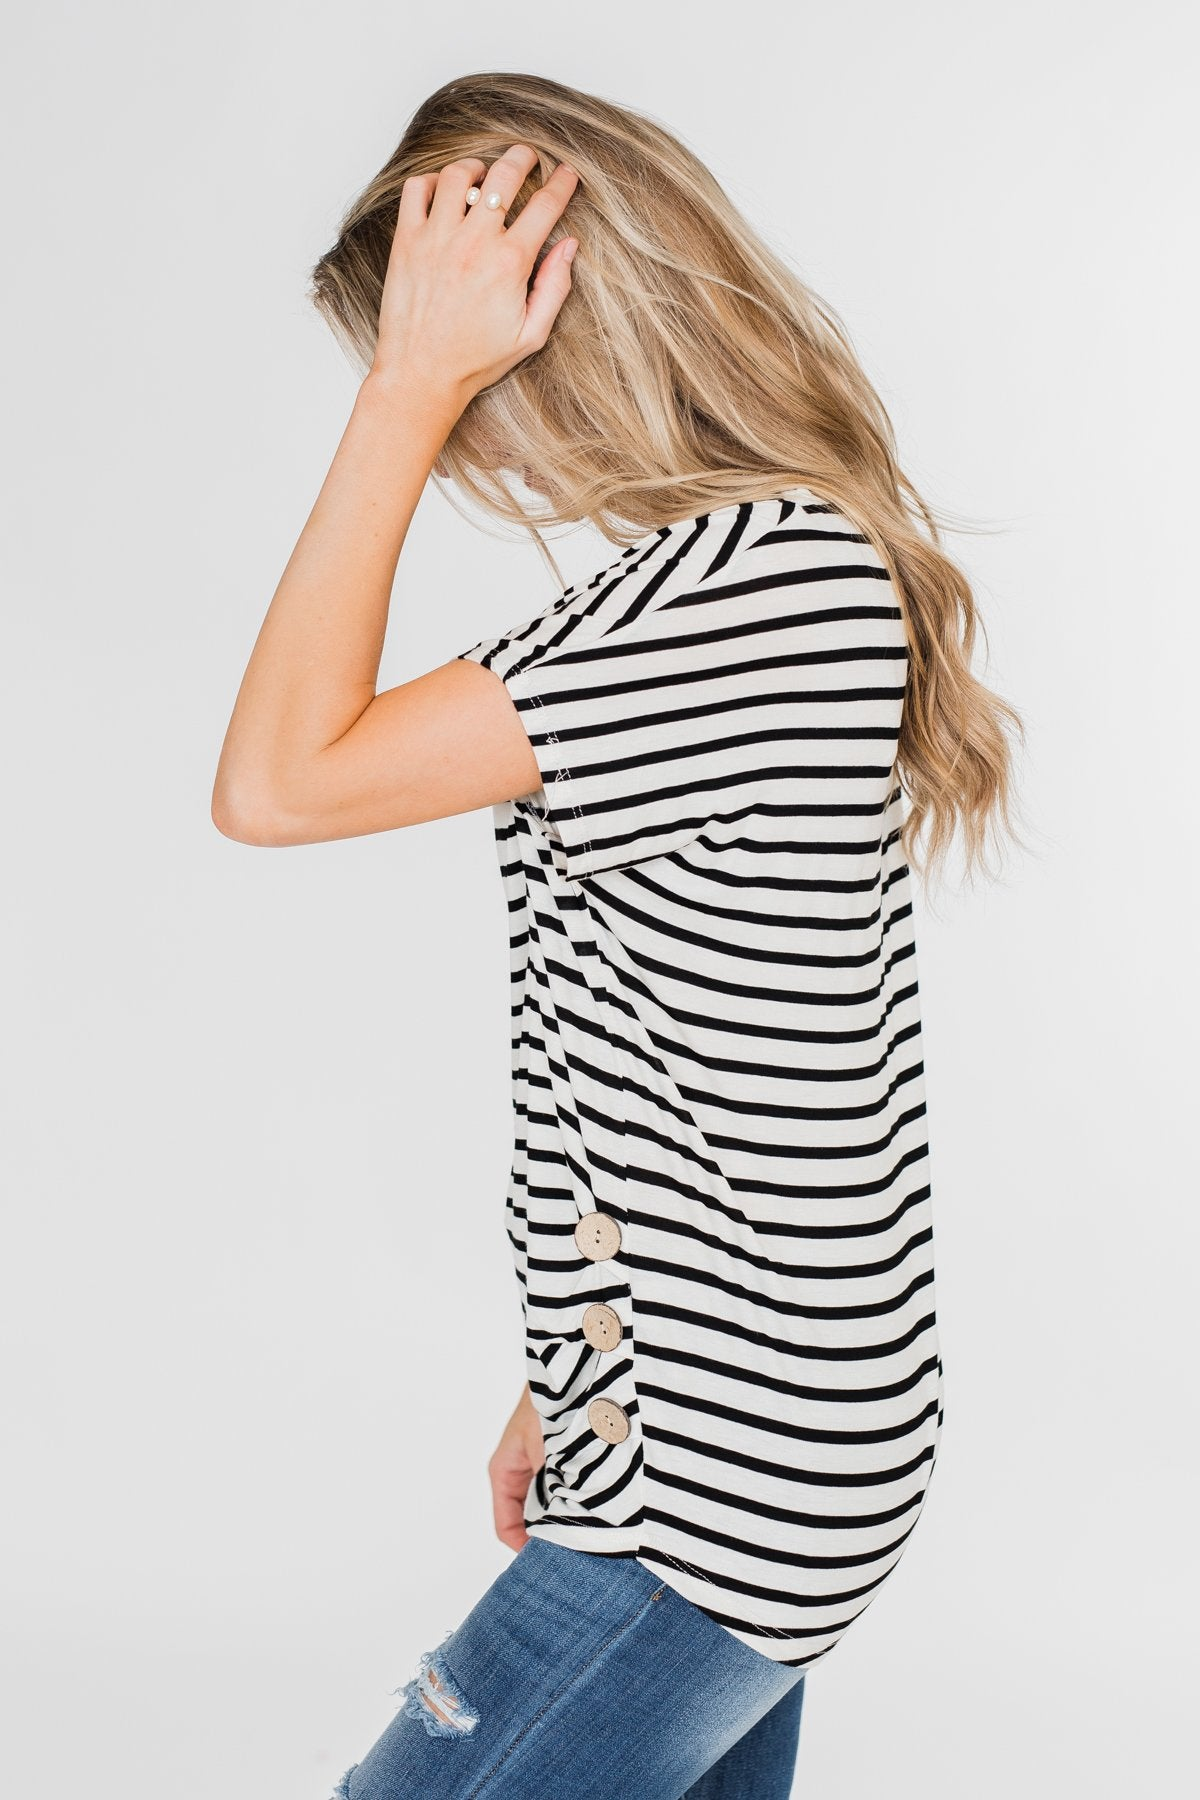 Hold That Thought Striped Top - Black & Ivory